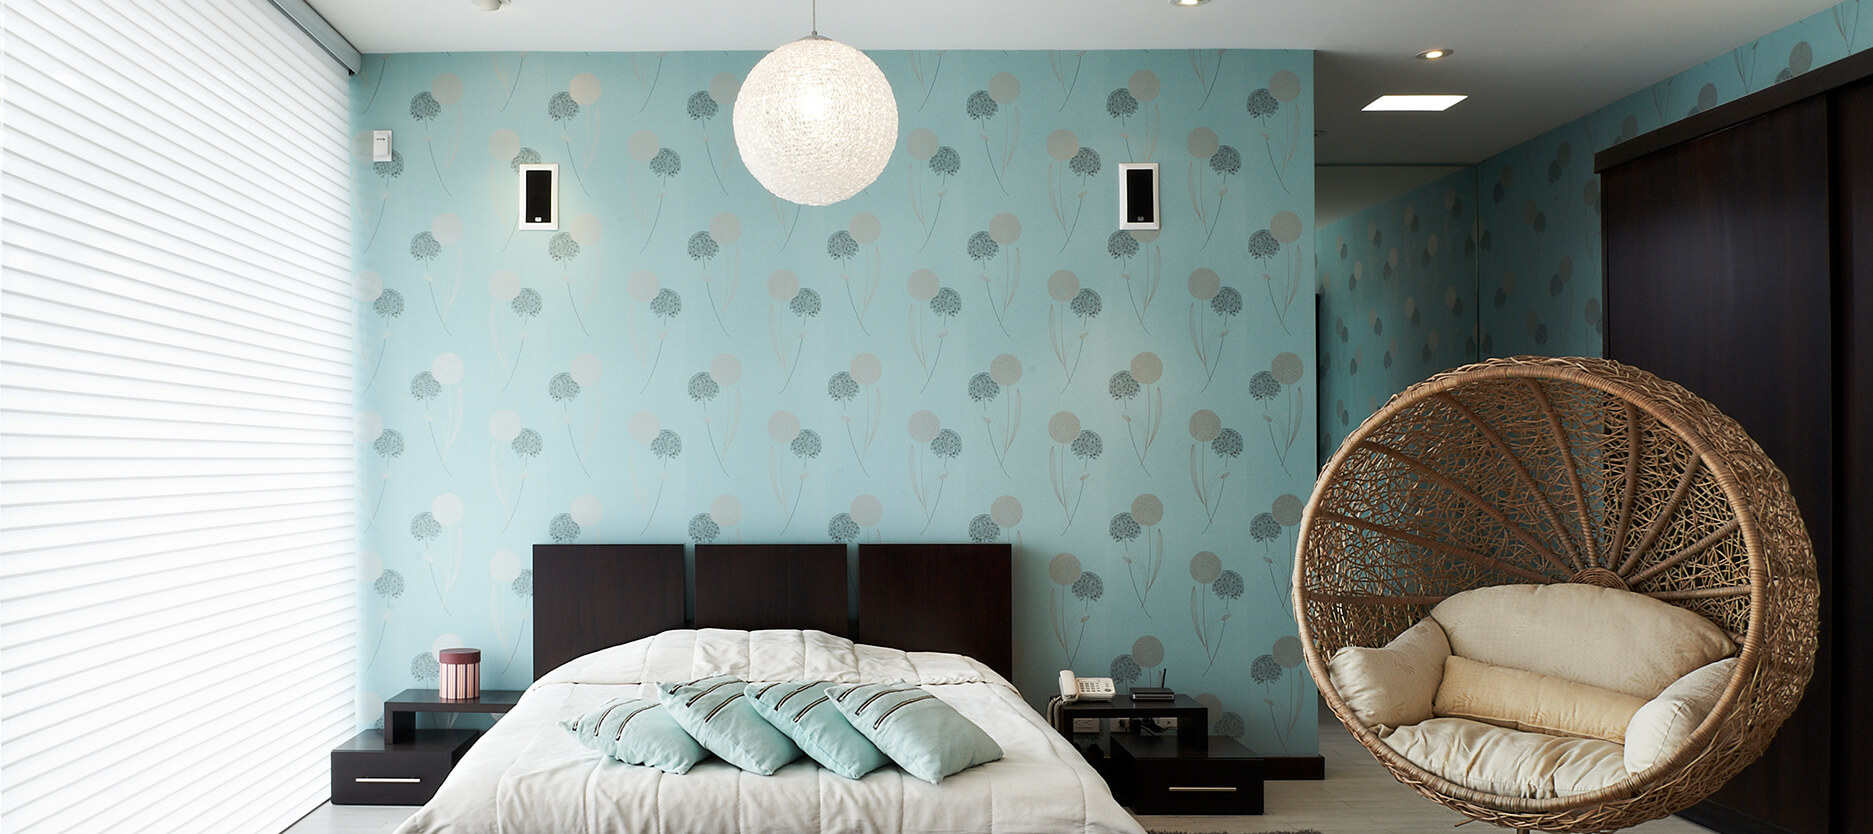 Two Colour Combination Ideas for Awesome Bedroom Decor